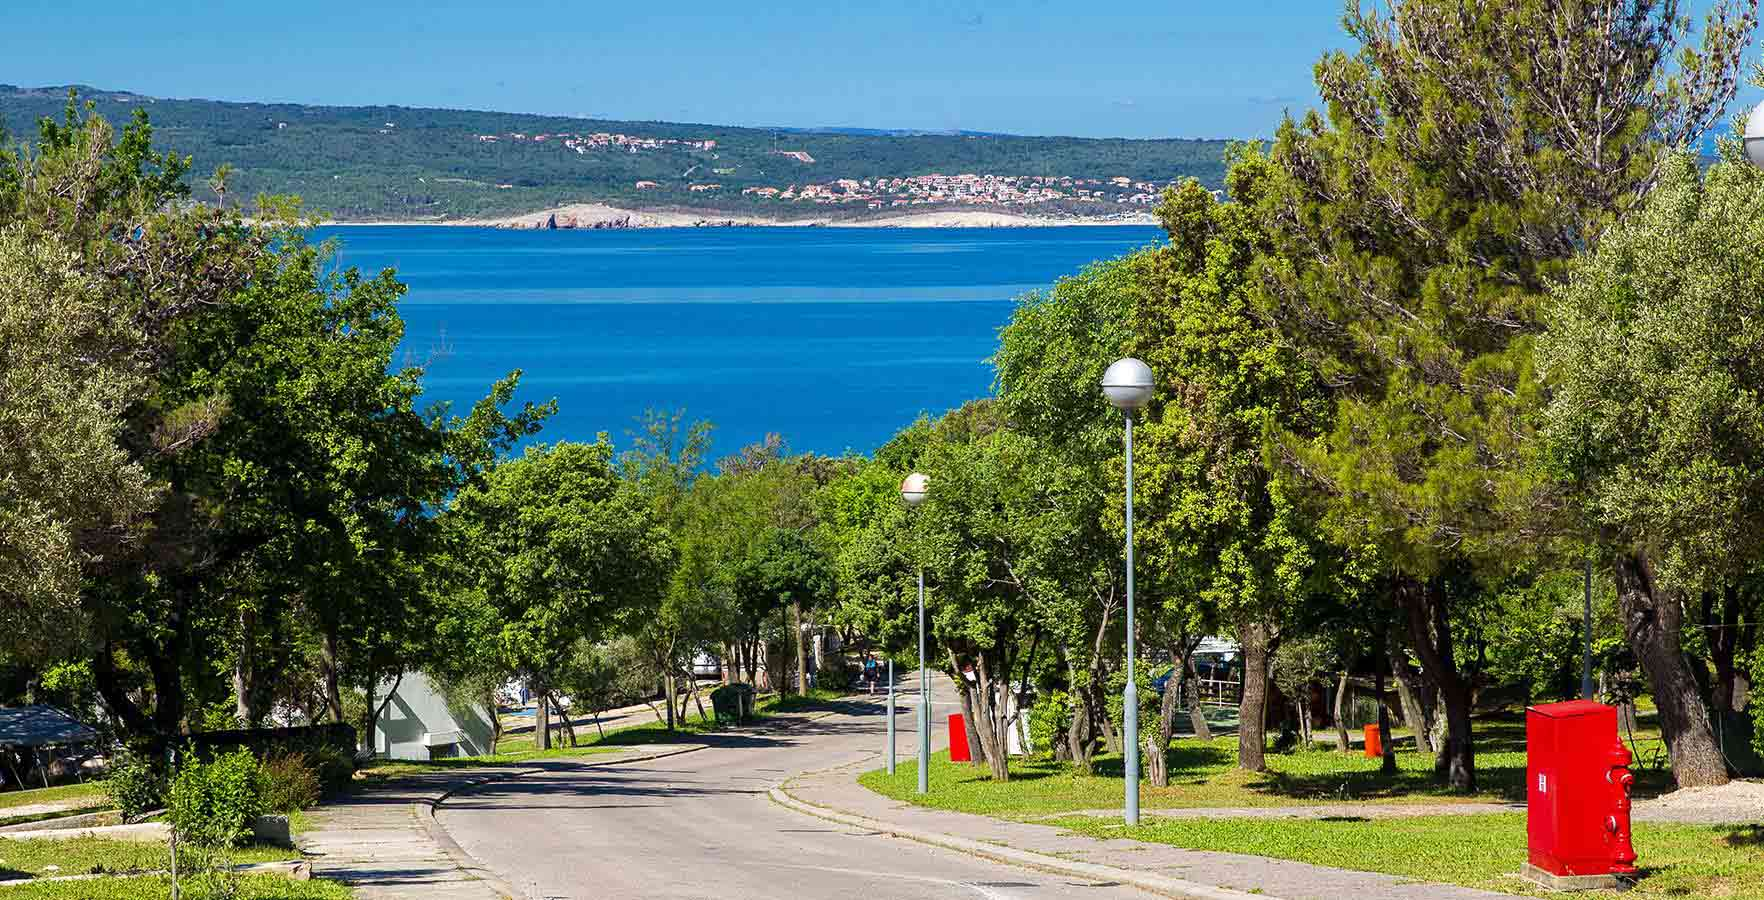 Campsite Selce - accommodation in Croatia